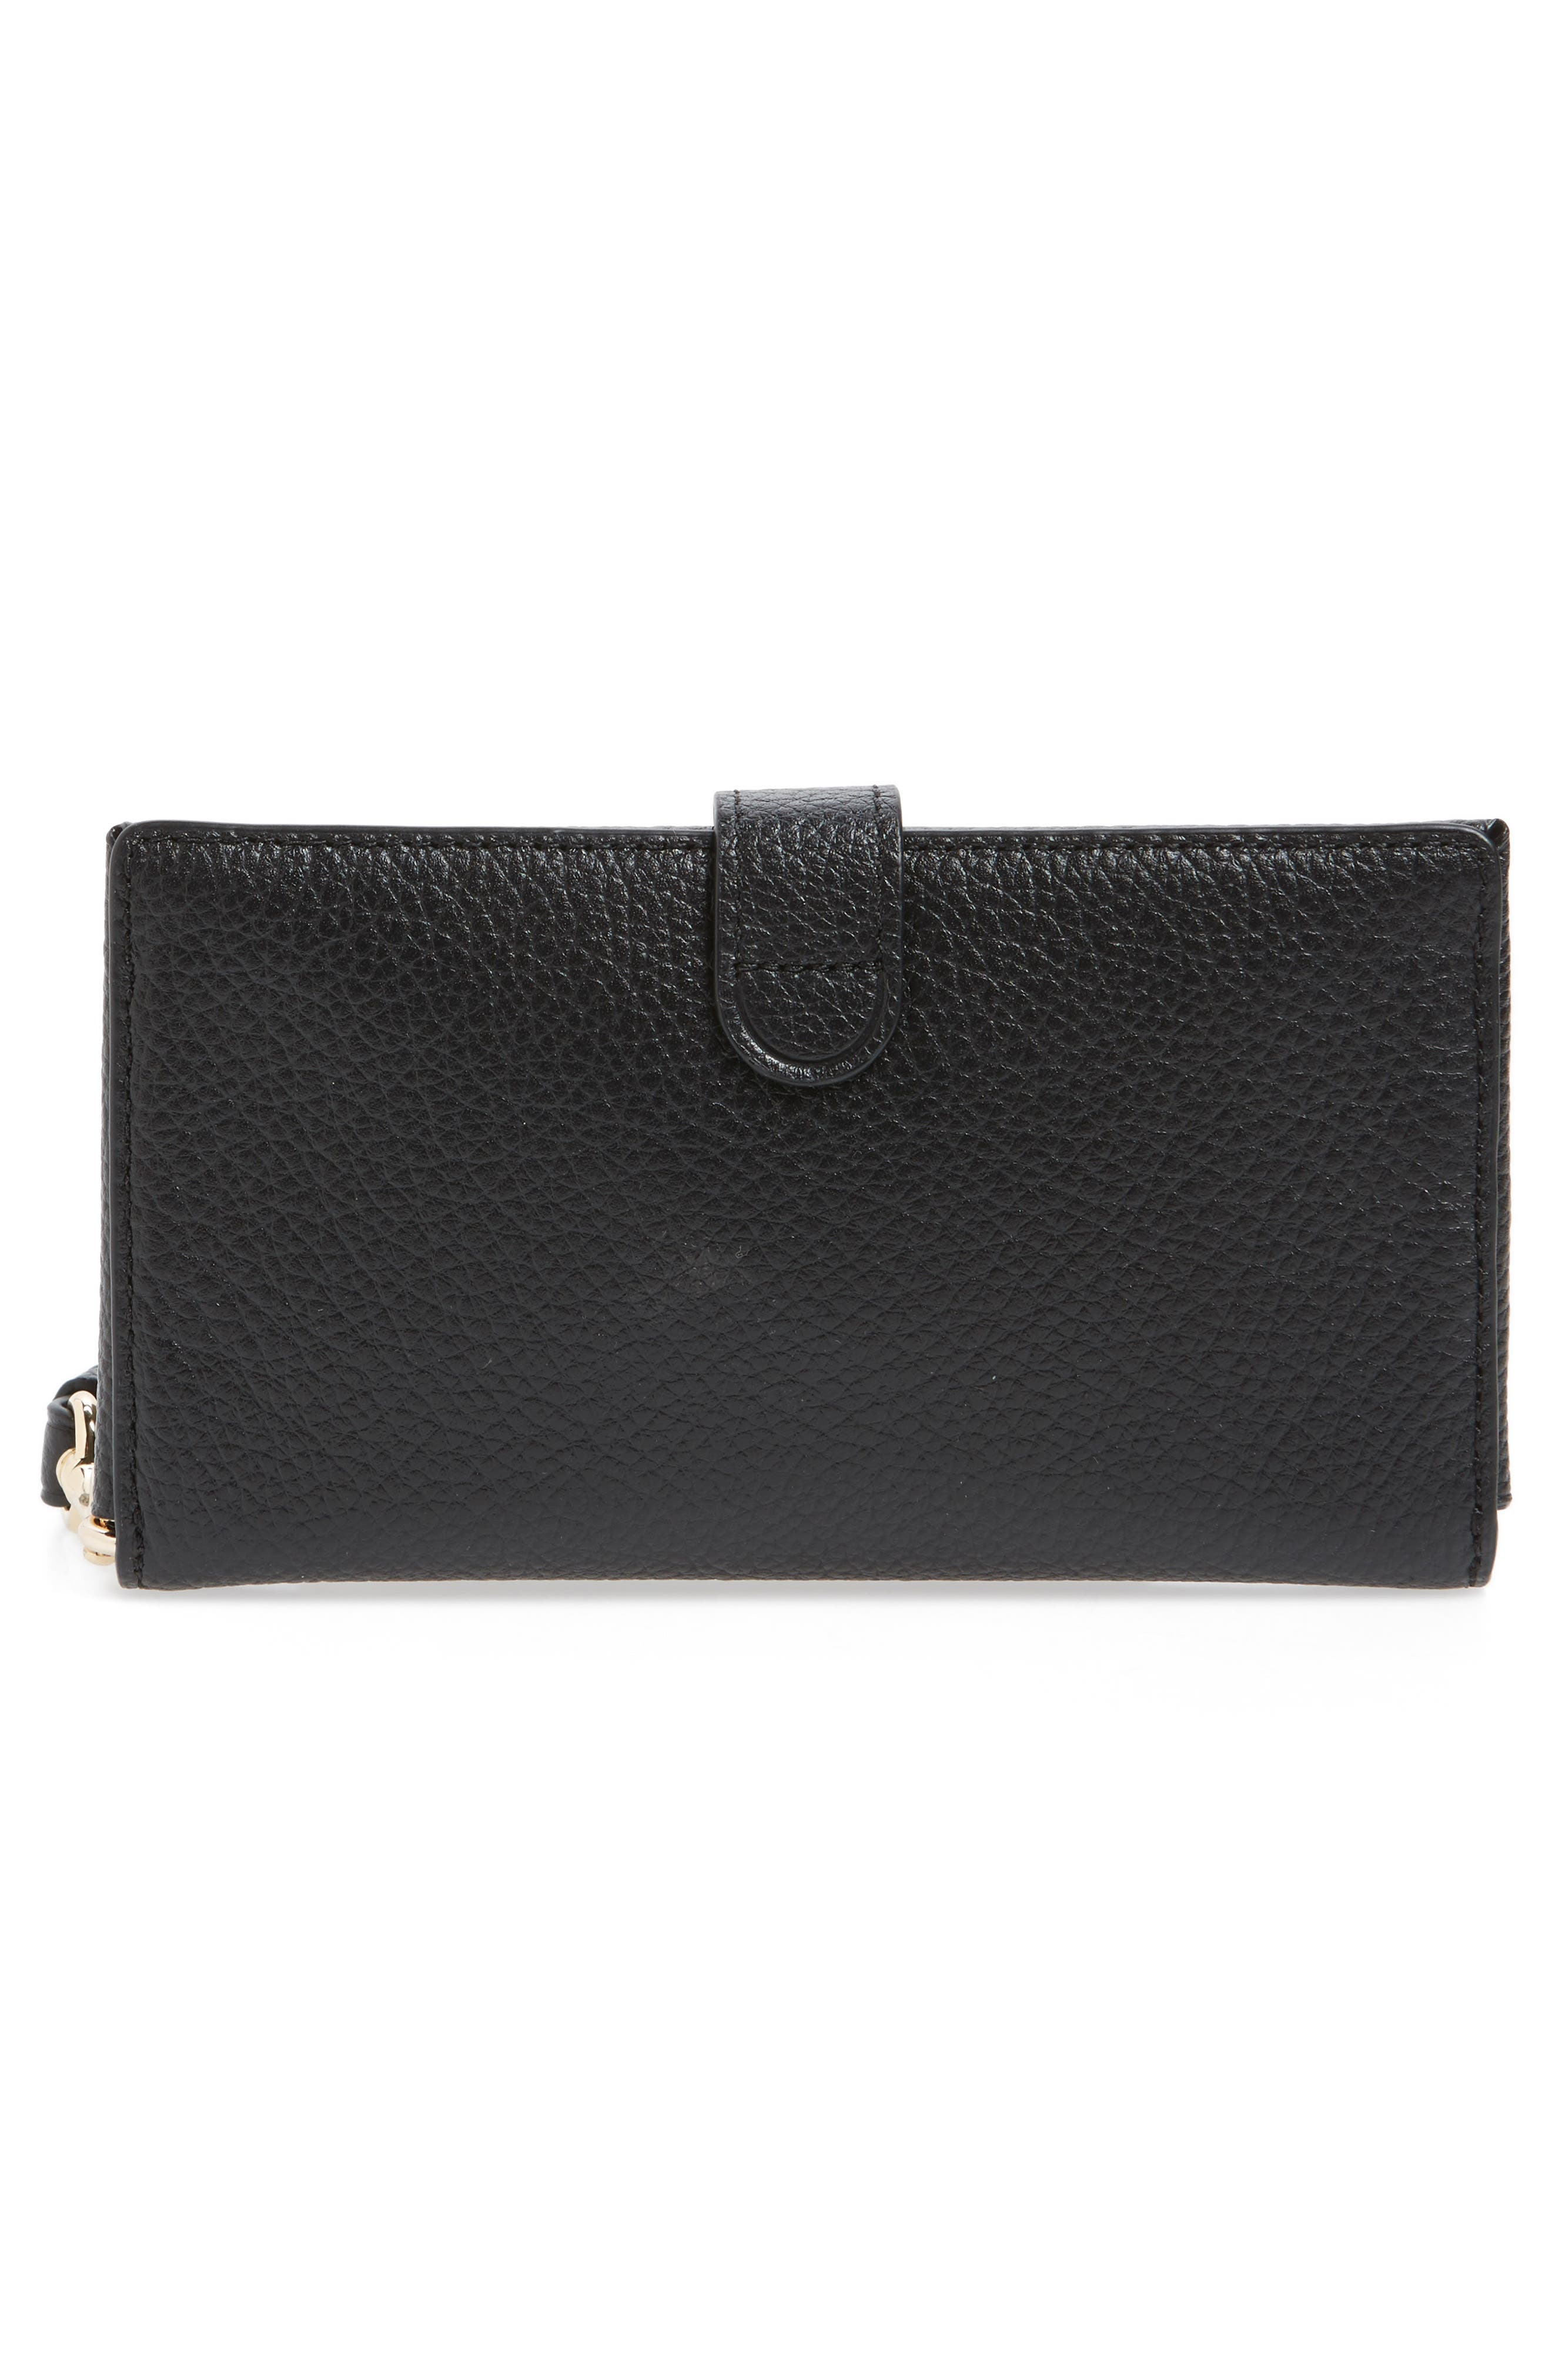 Calfskin Leather Phone Wristlet,                             Alternate thumbnail 3, color,                             001